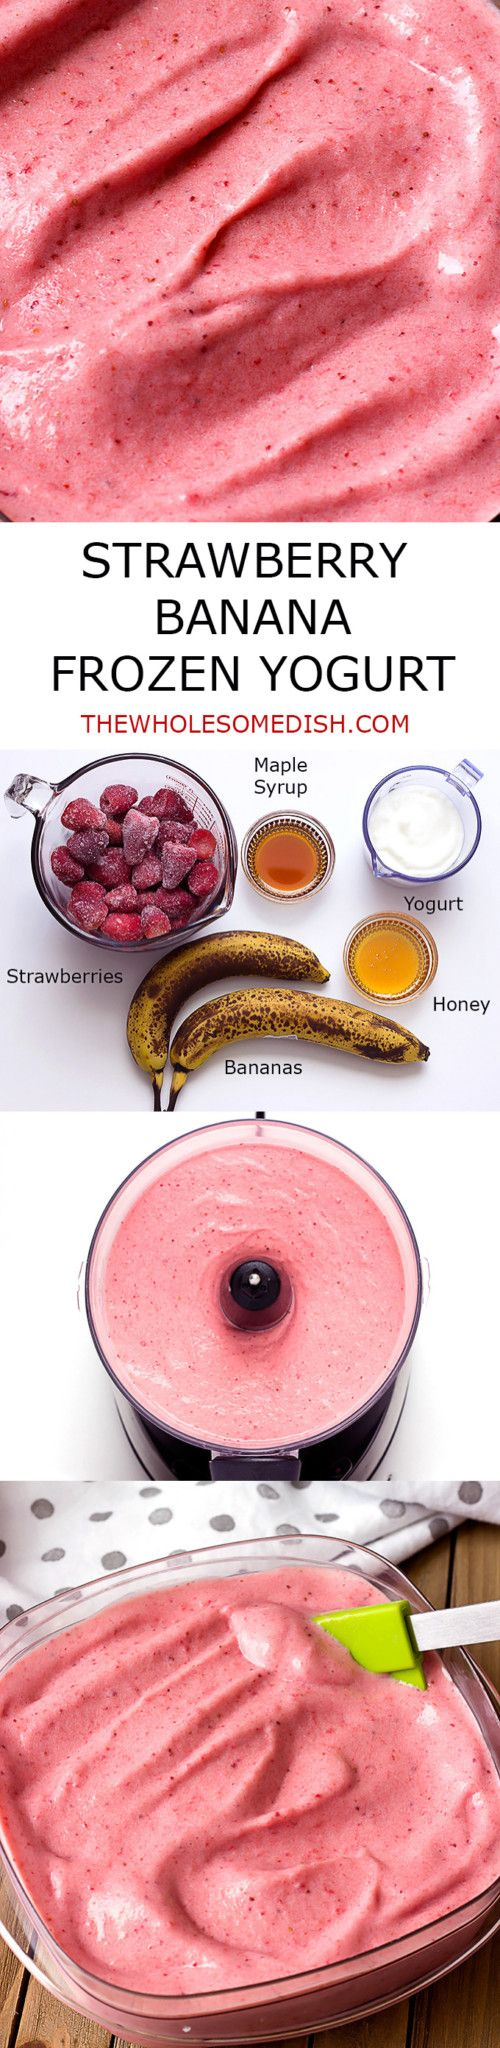 Strawberry Banana Frozen Yogurt - homemade with simple ingredients:  strawberries, bananas, yogurt, maple syrup, and honey. via @afinks